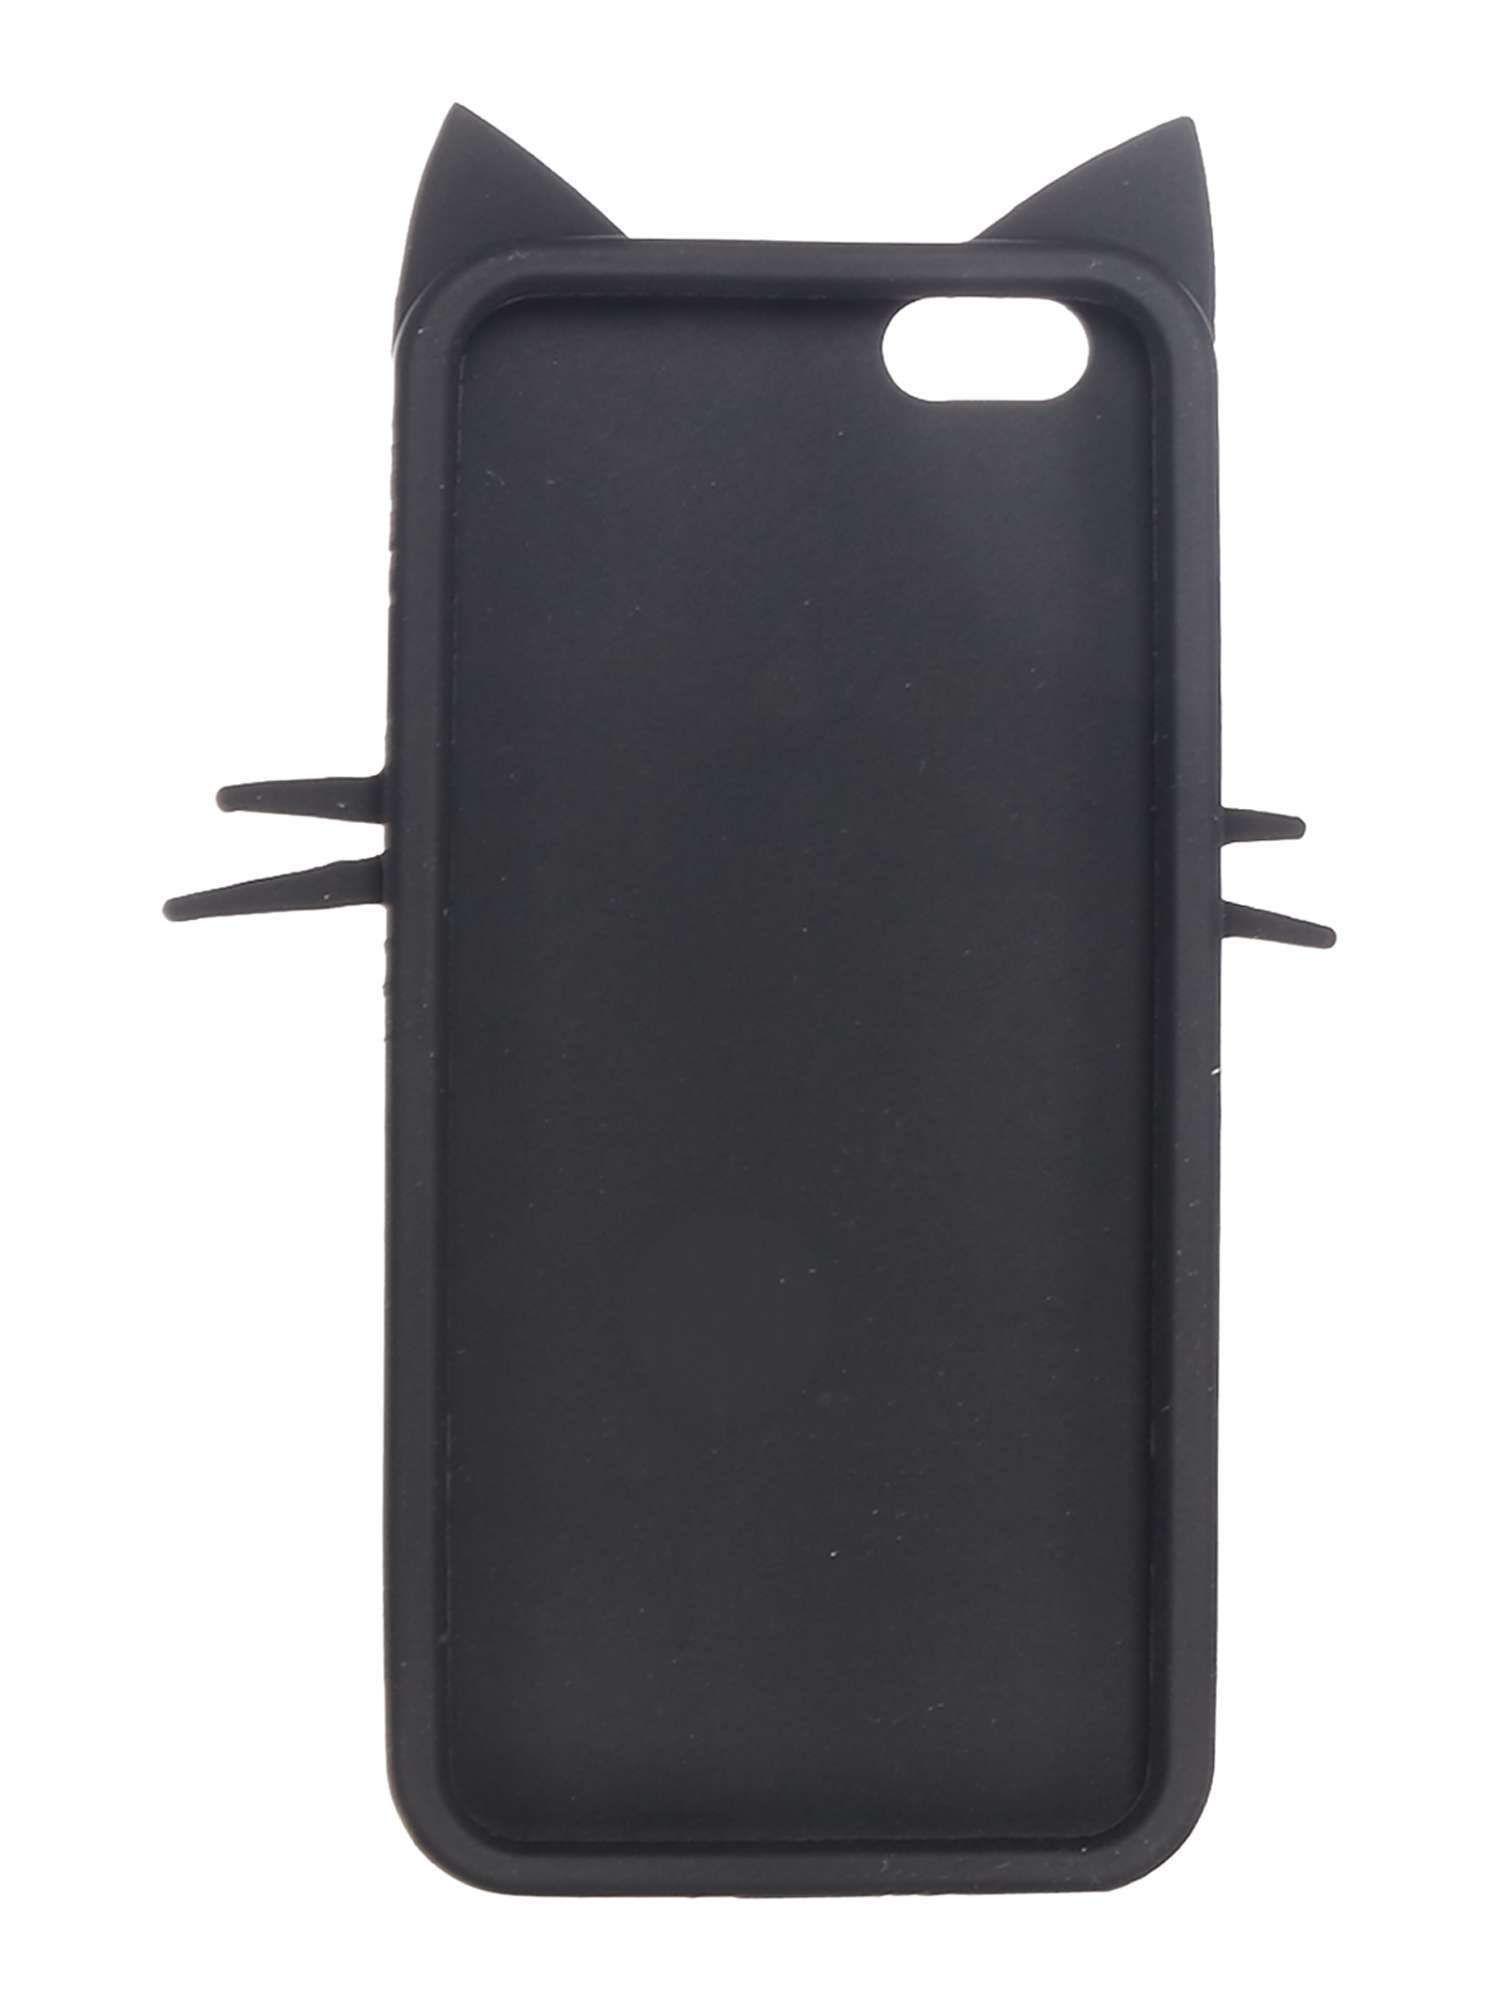 Lulu Guinness★Mono Stripe Kooky cat   iphone 6ケース